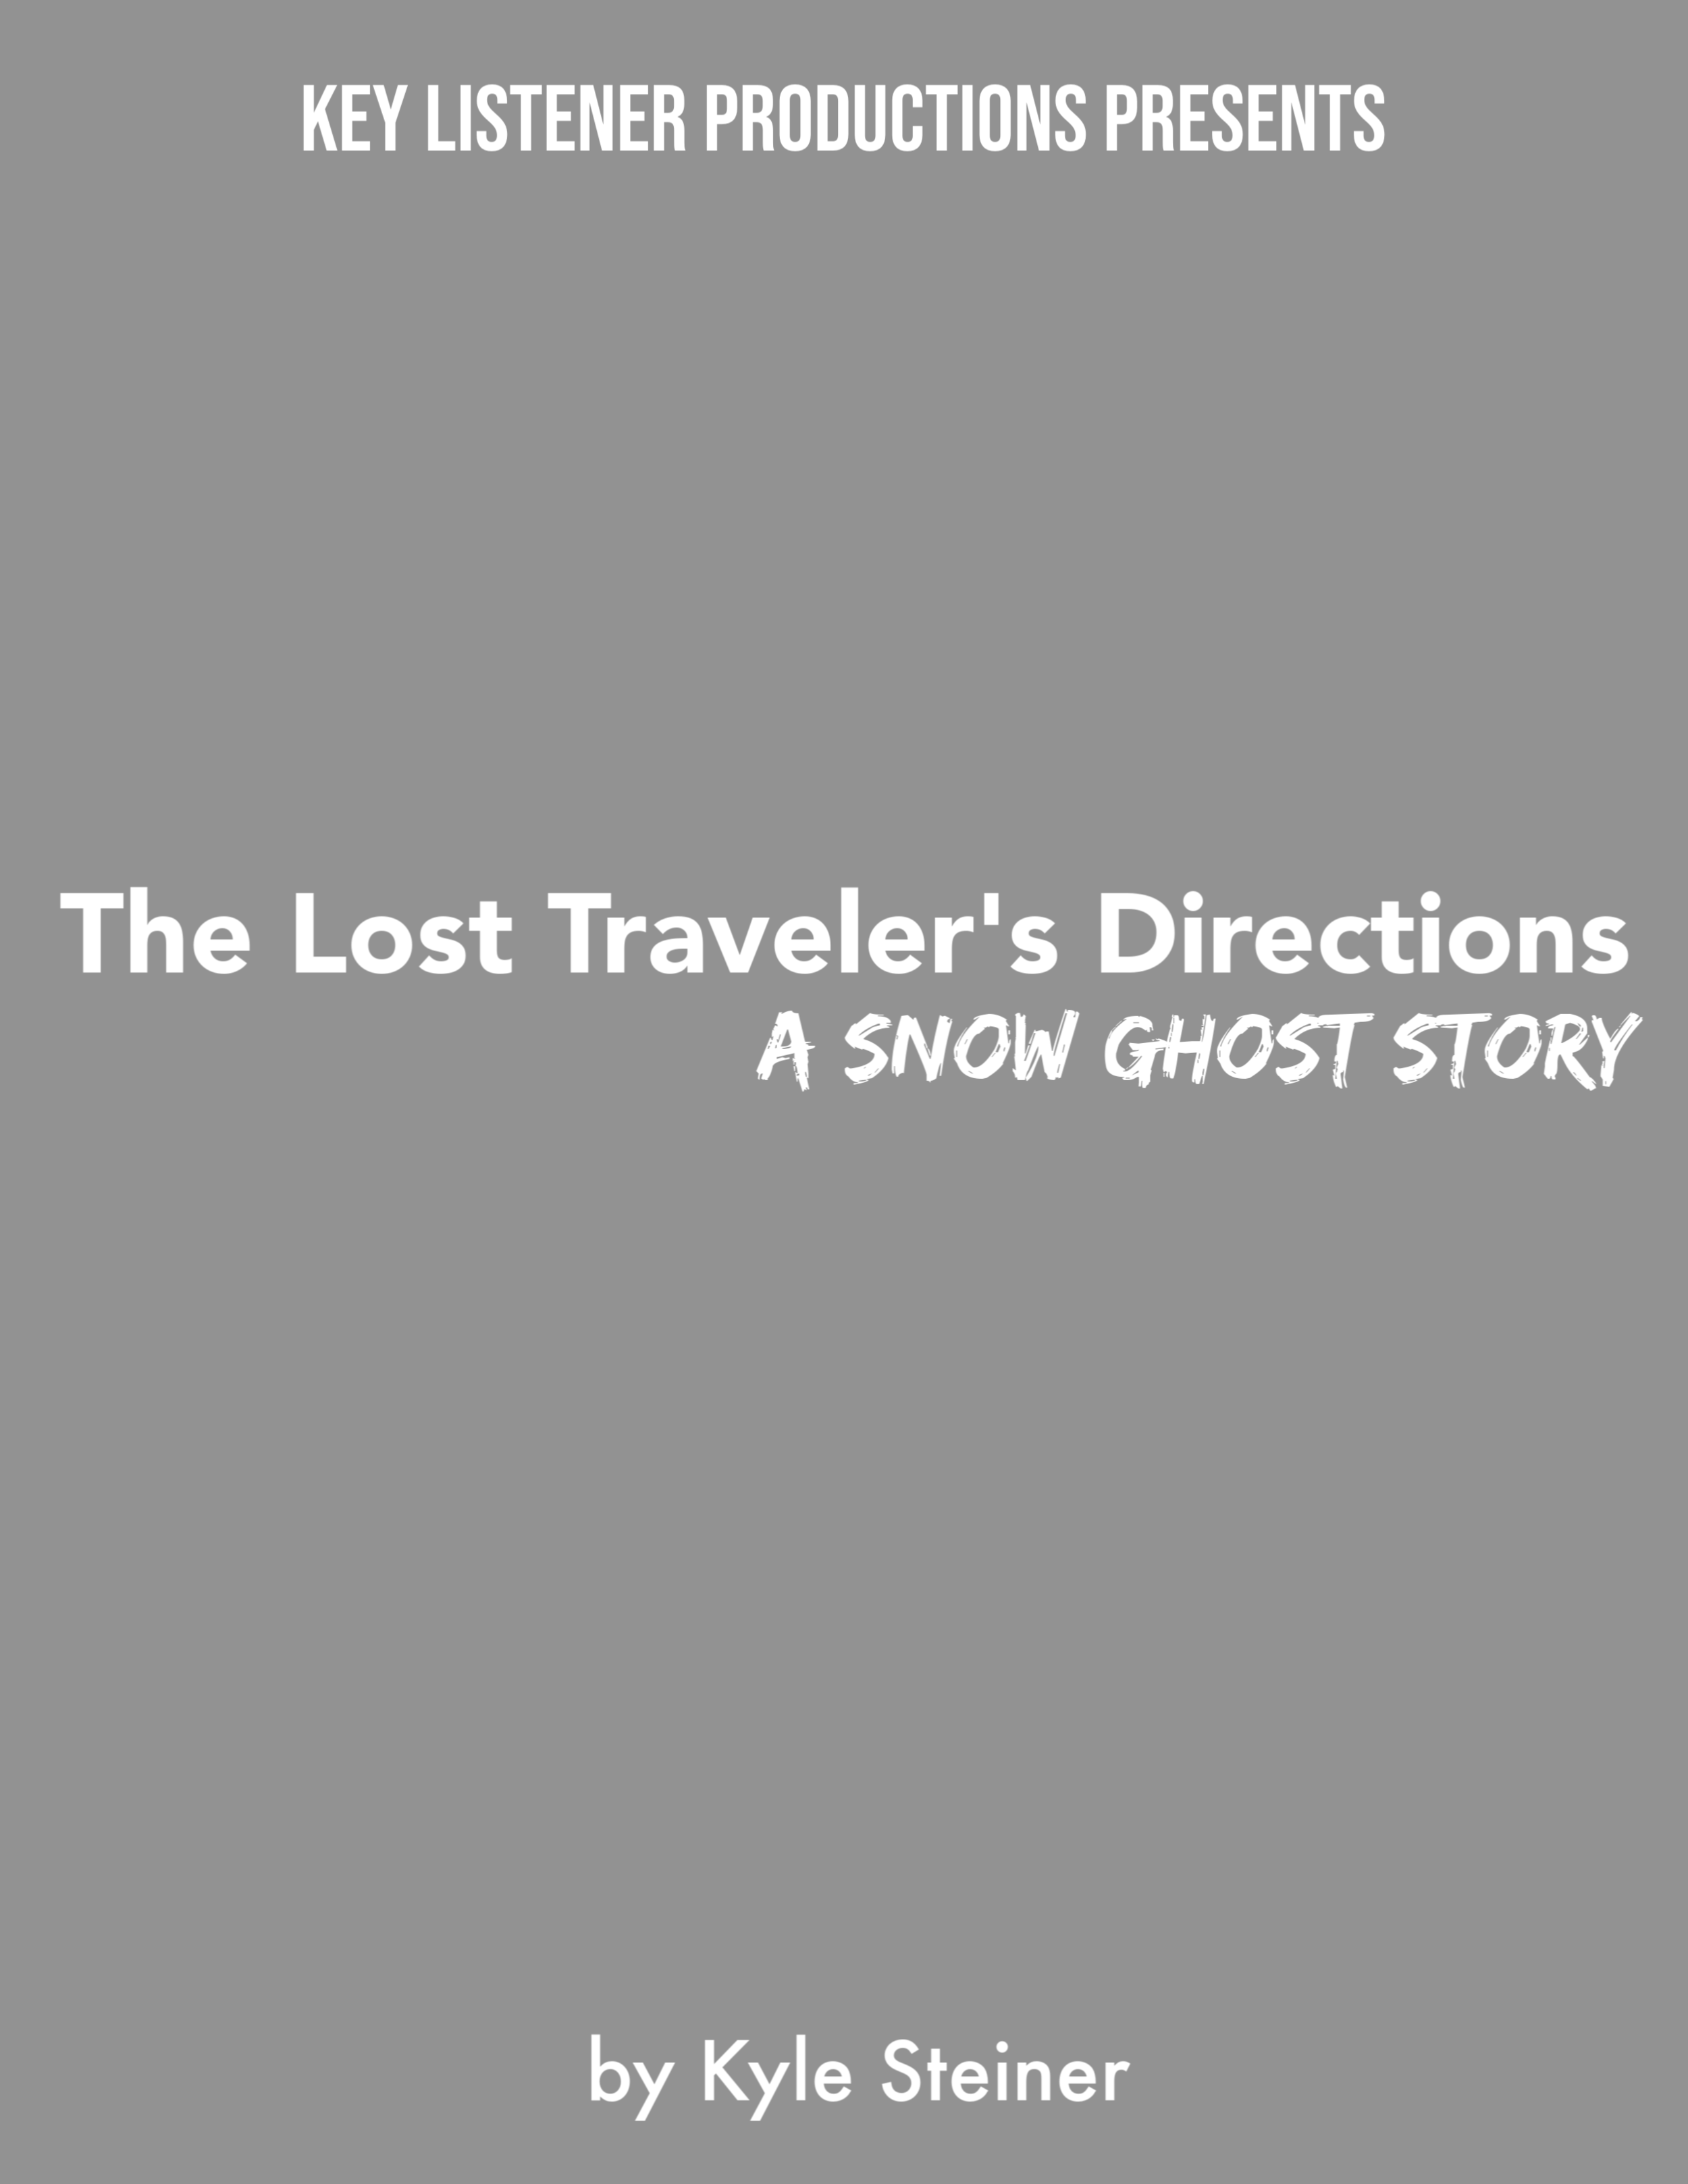 Snow Ghost Chapter Book Web Store Teaser.png